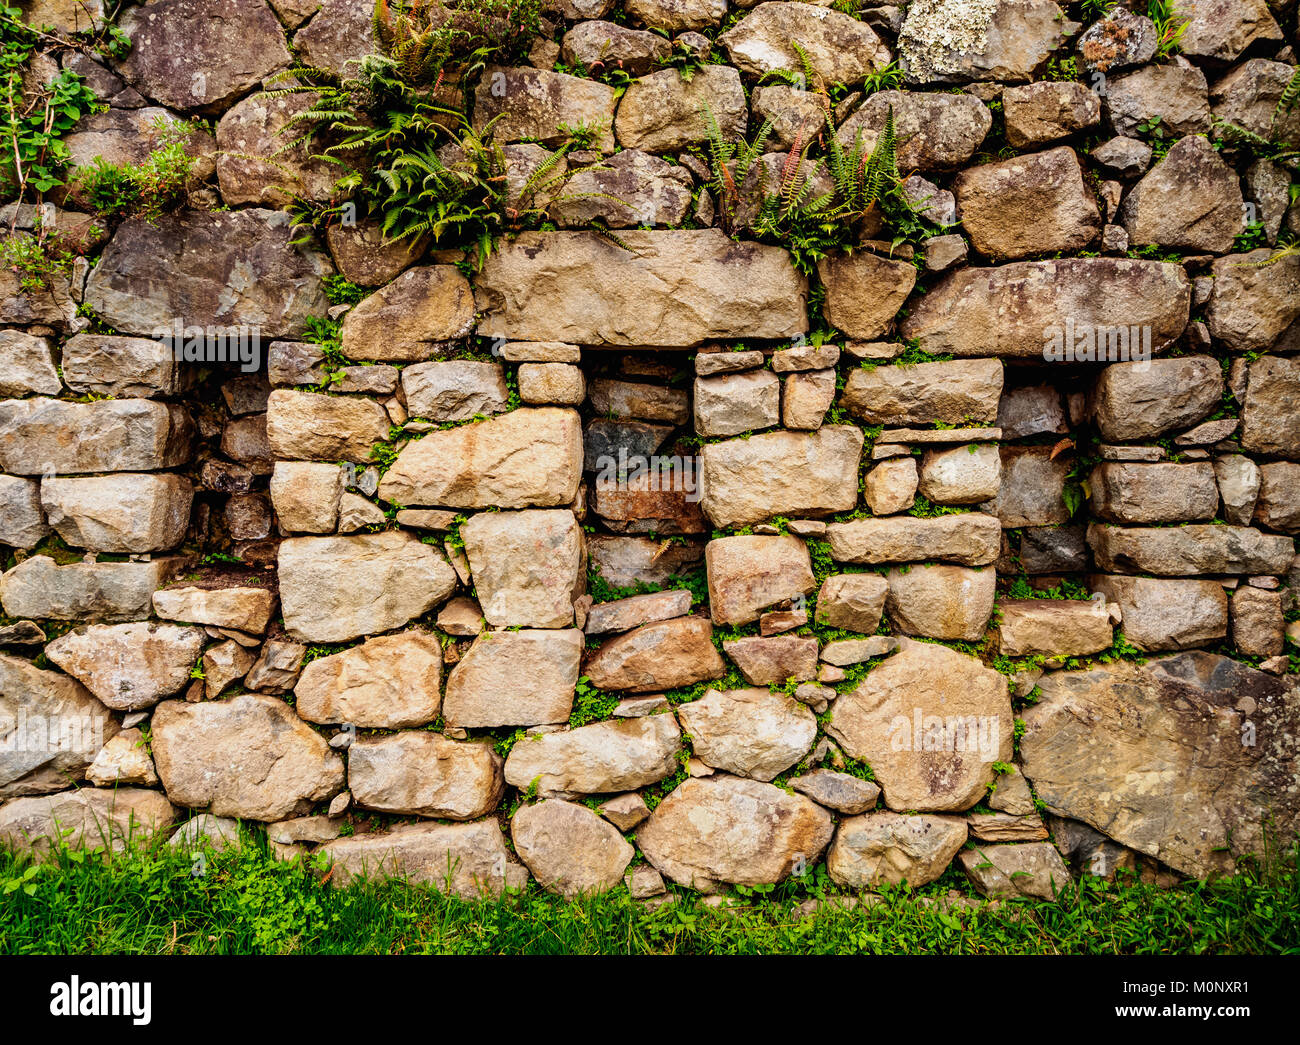 Trapezoidal niches,Inca Stonework,Machu Picchu,Cusco Region,Peru - Stock Image